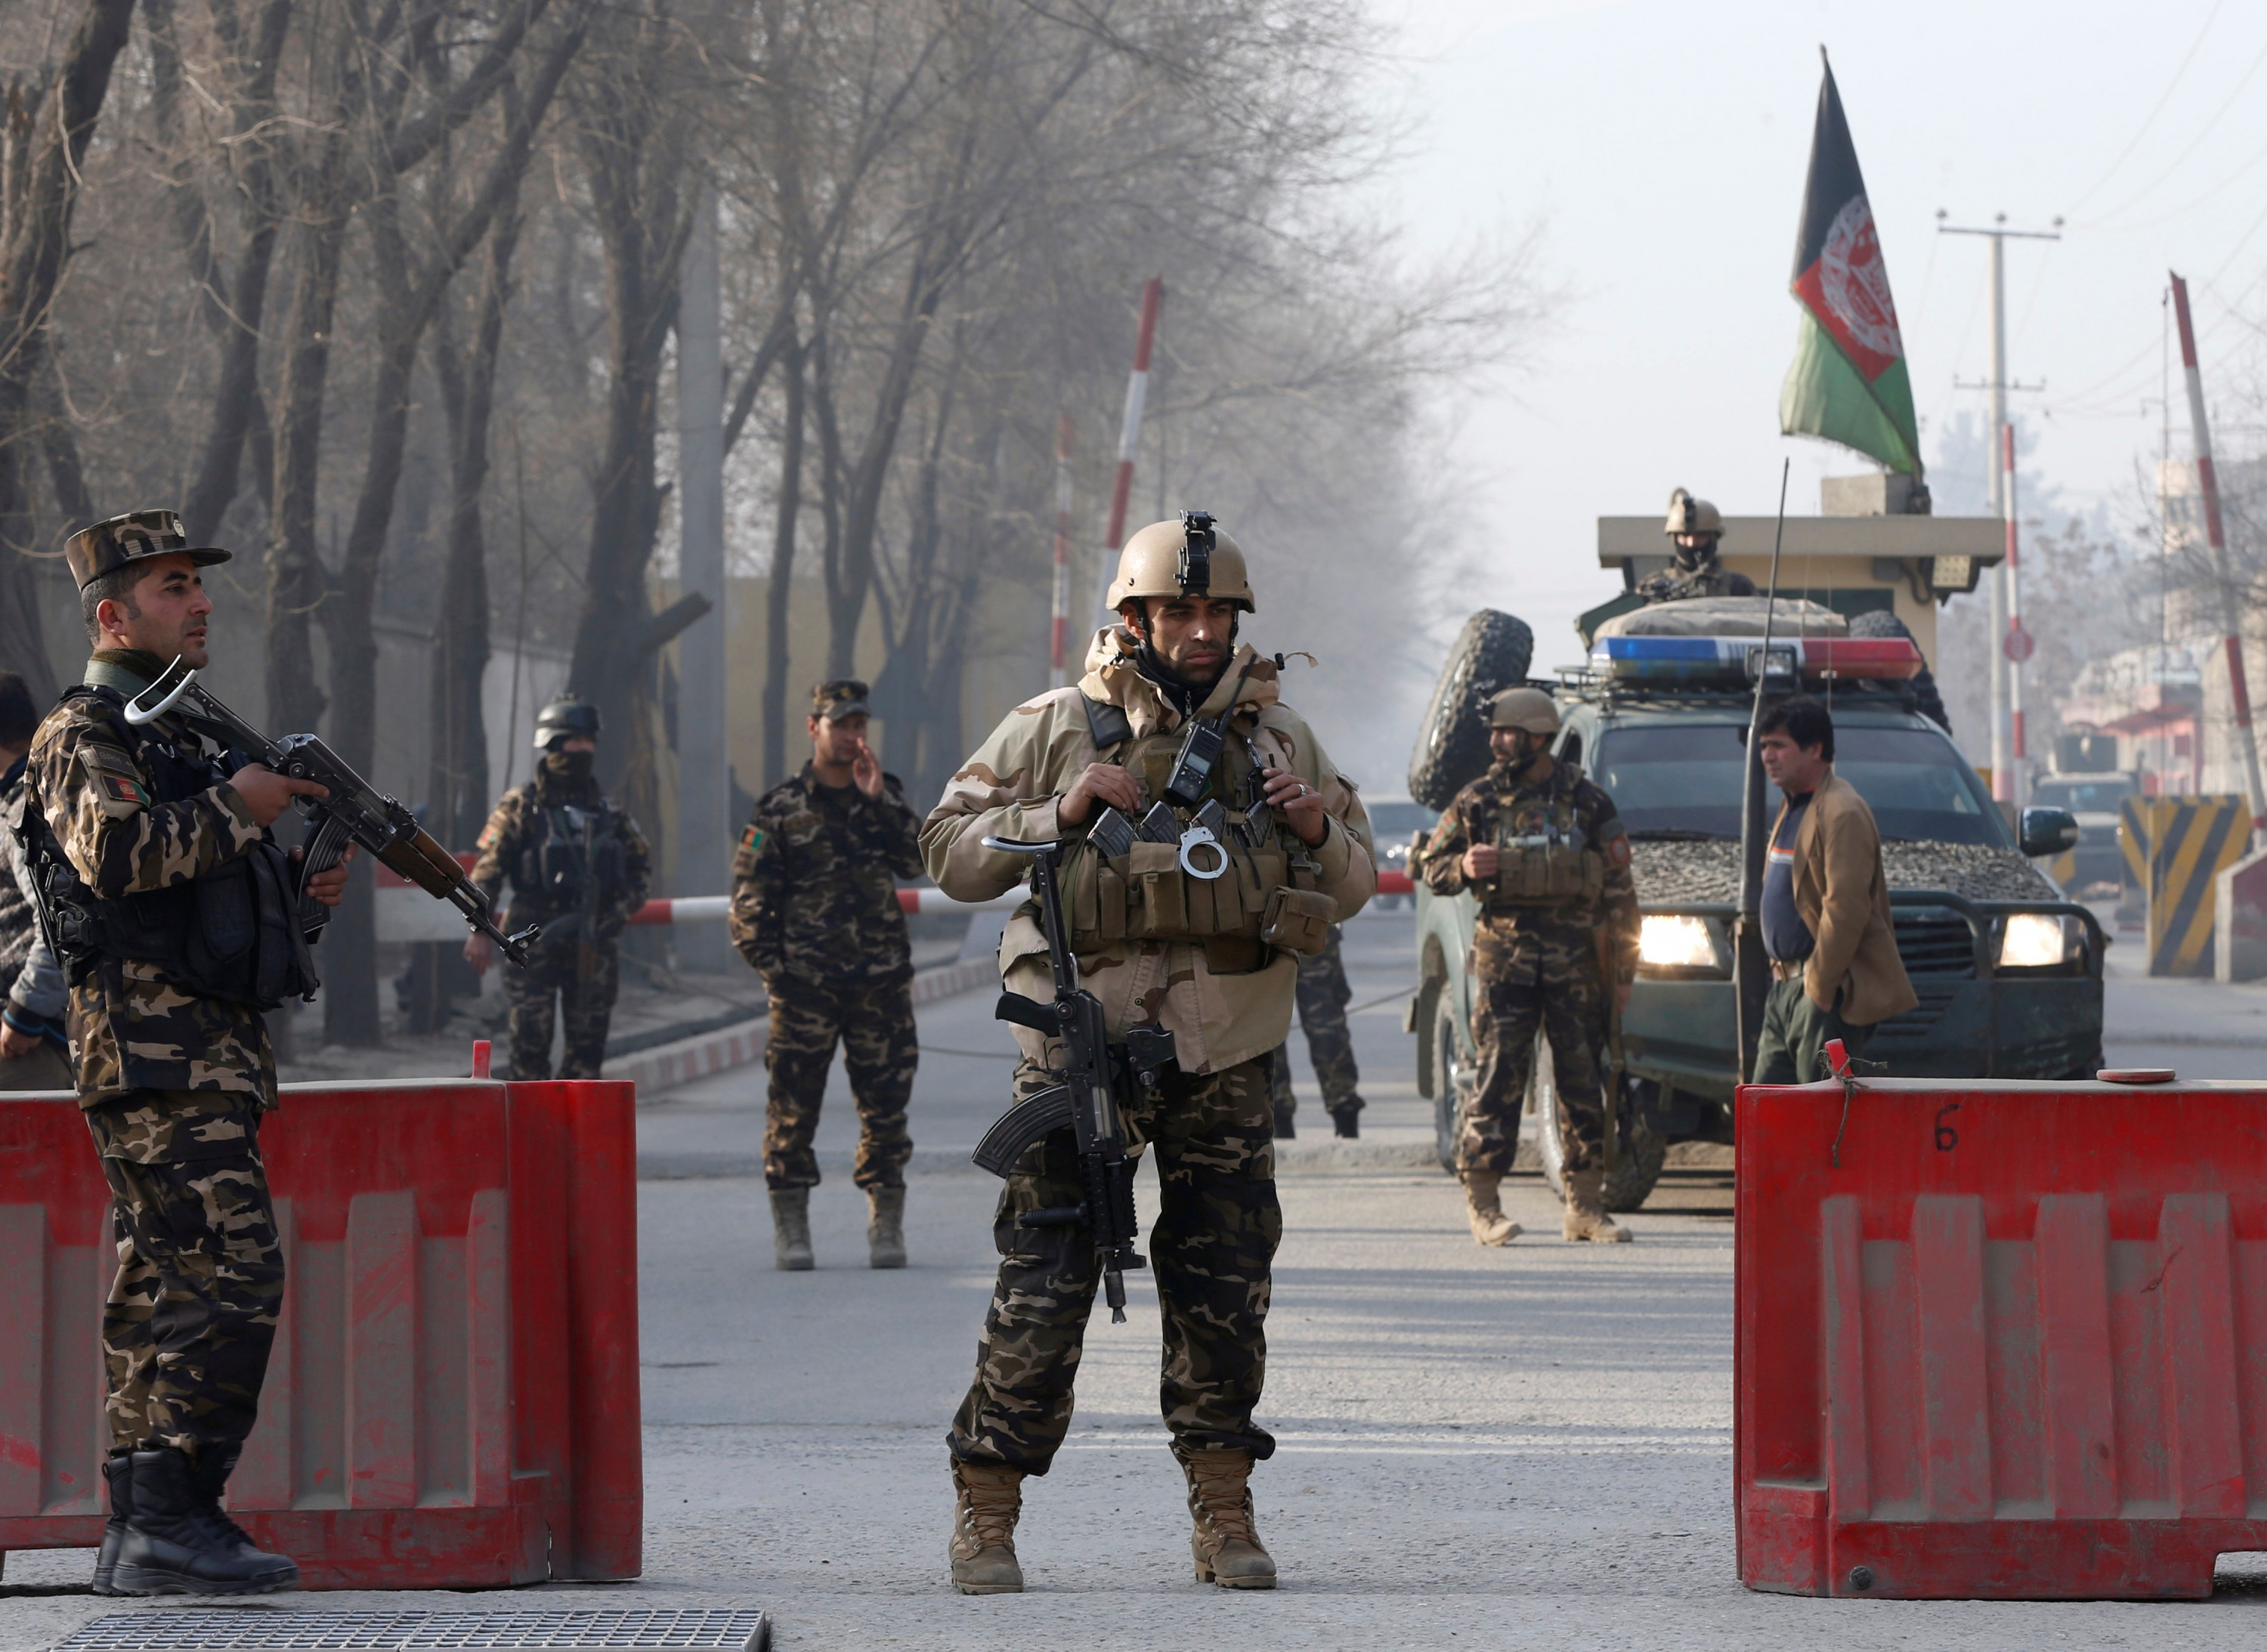 More Than 40 Dead After Explosions In Afghanistan's Capital